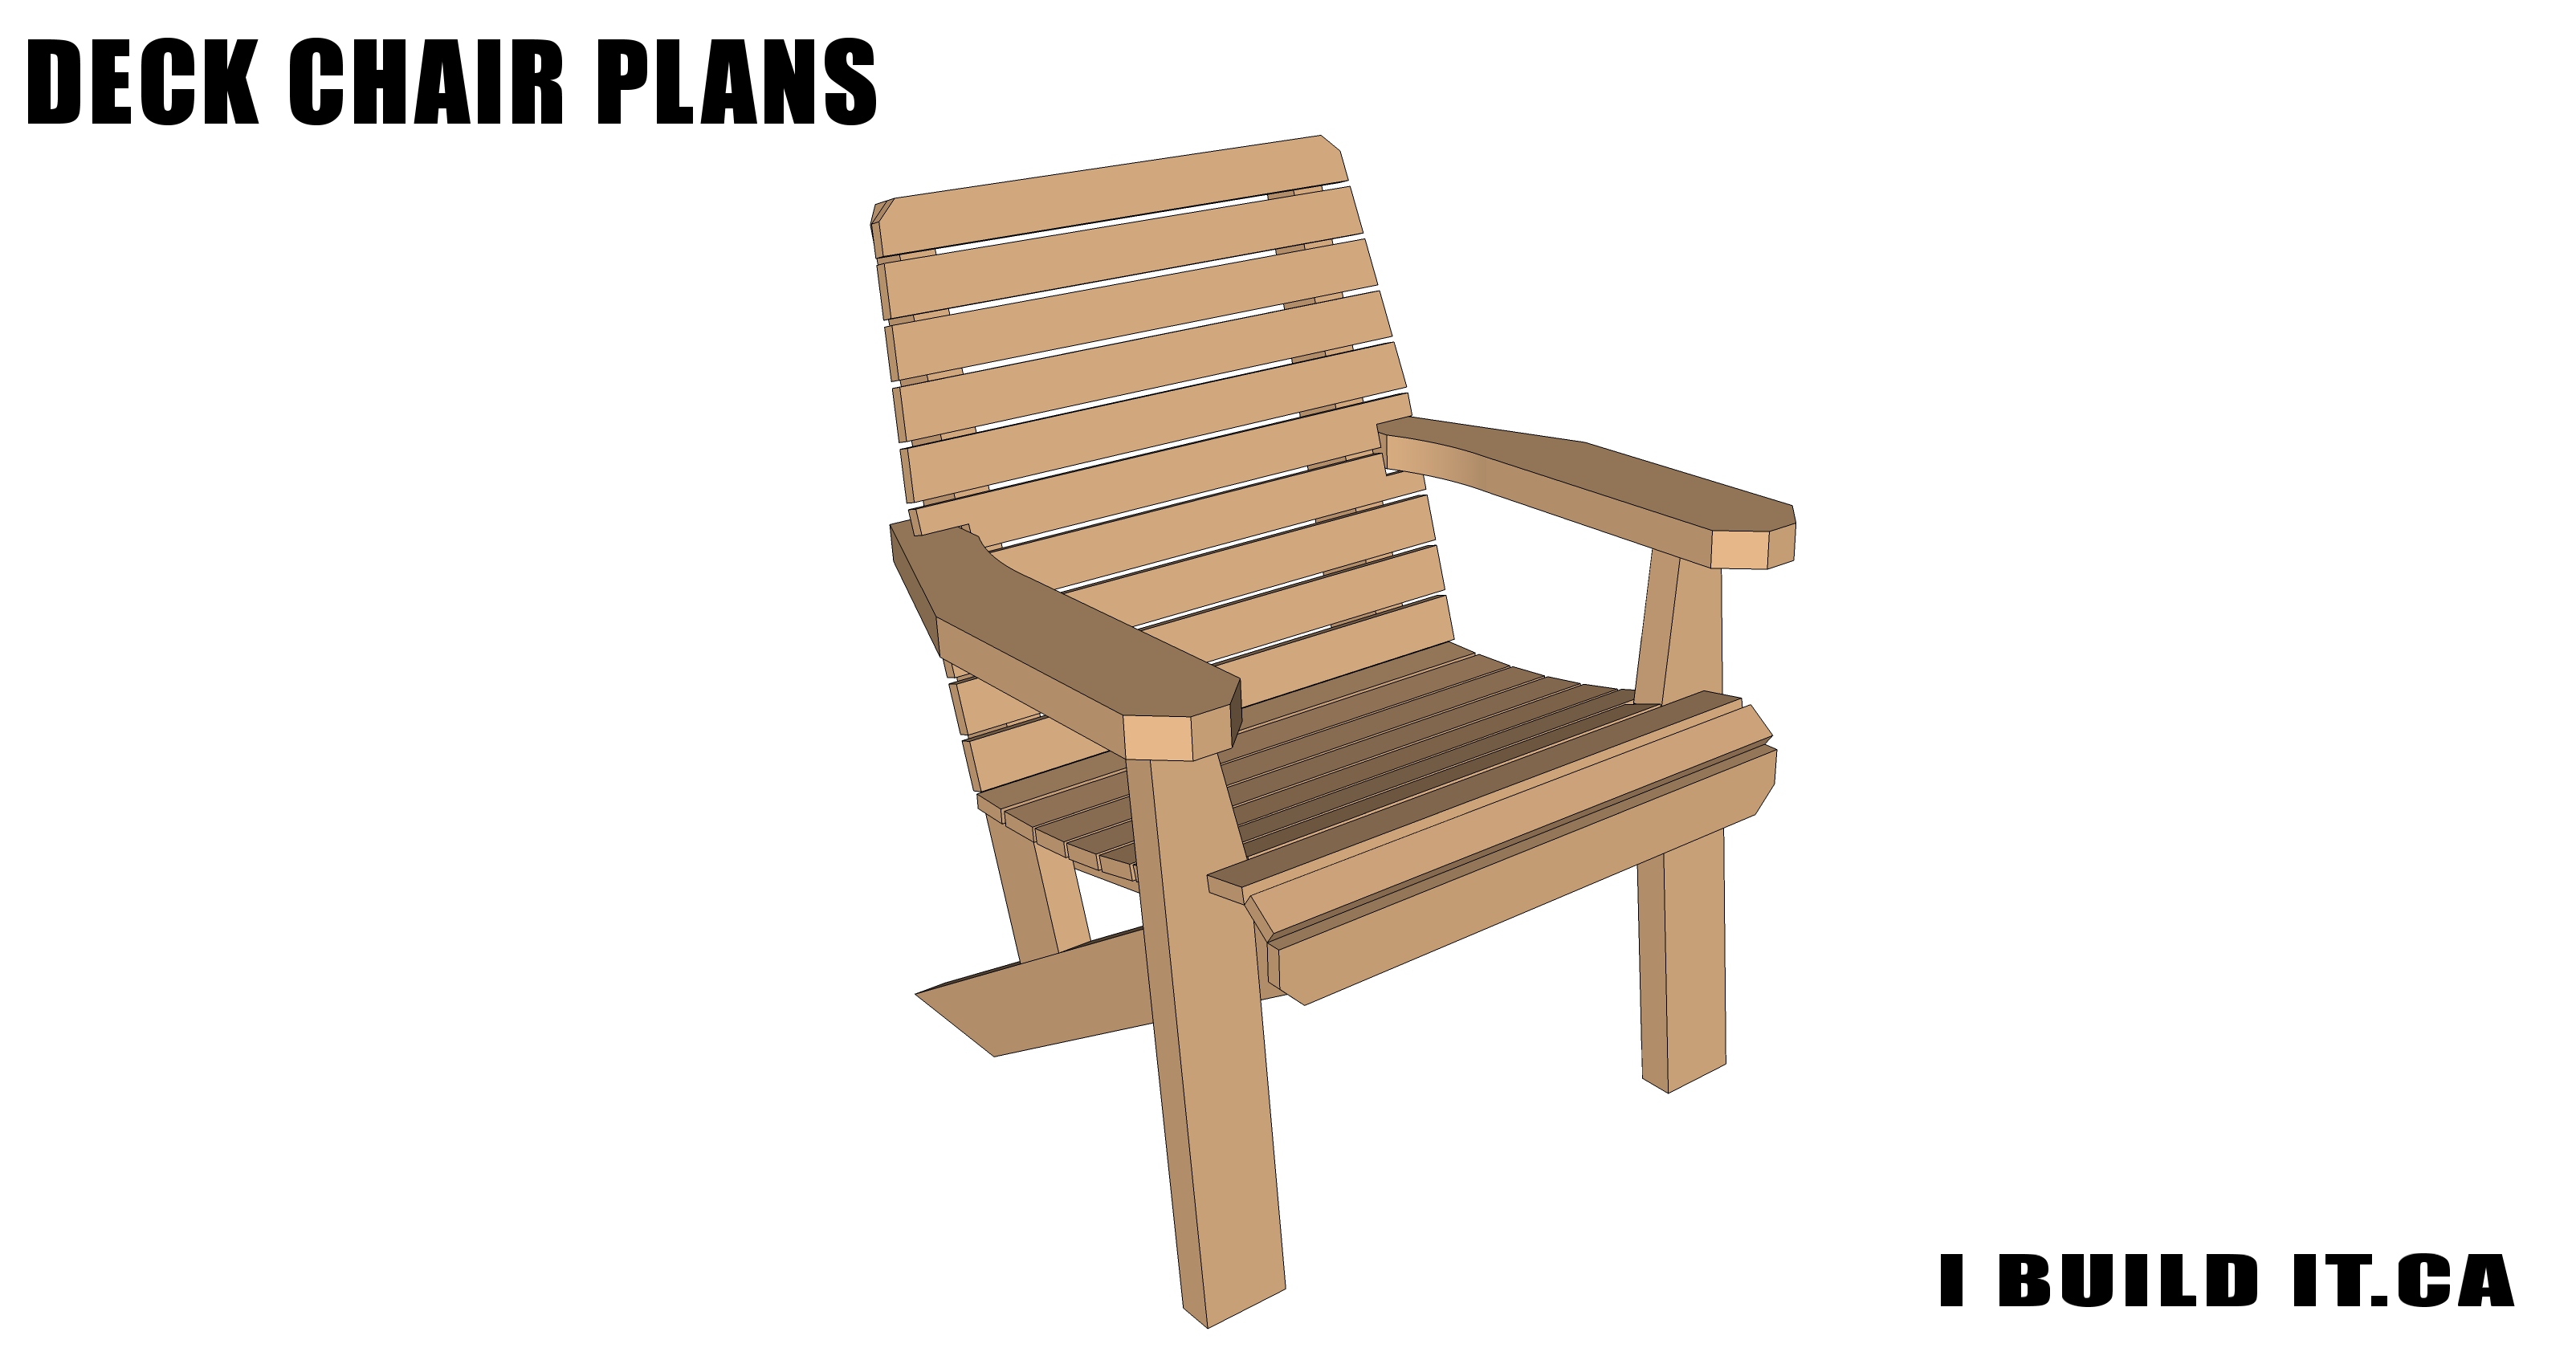 deck chair plans plans ibuildit ca